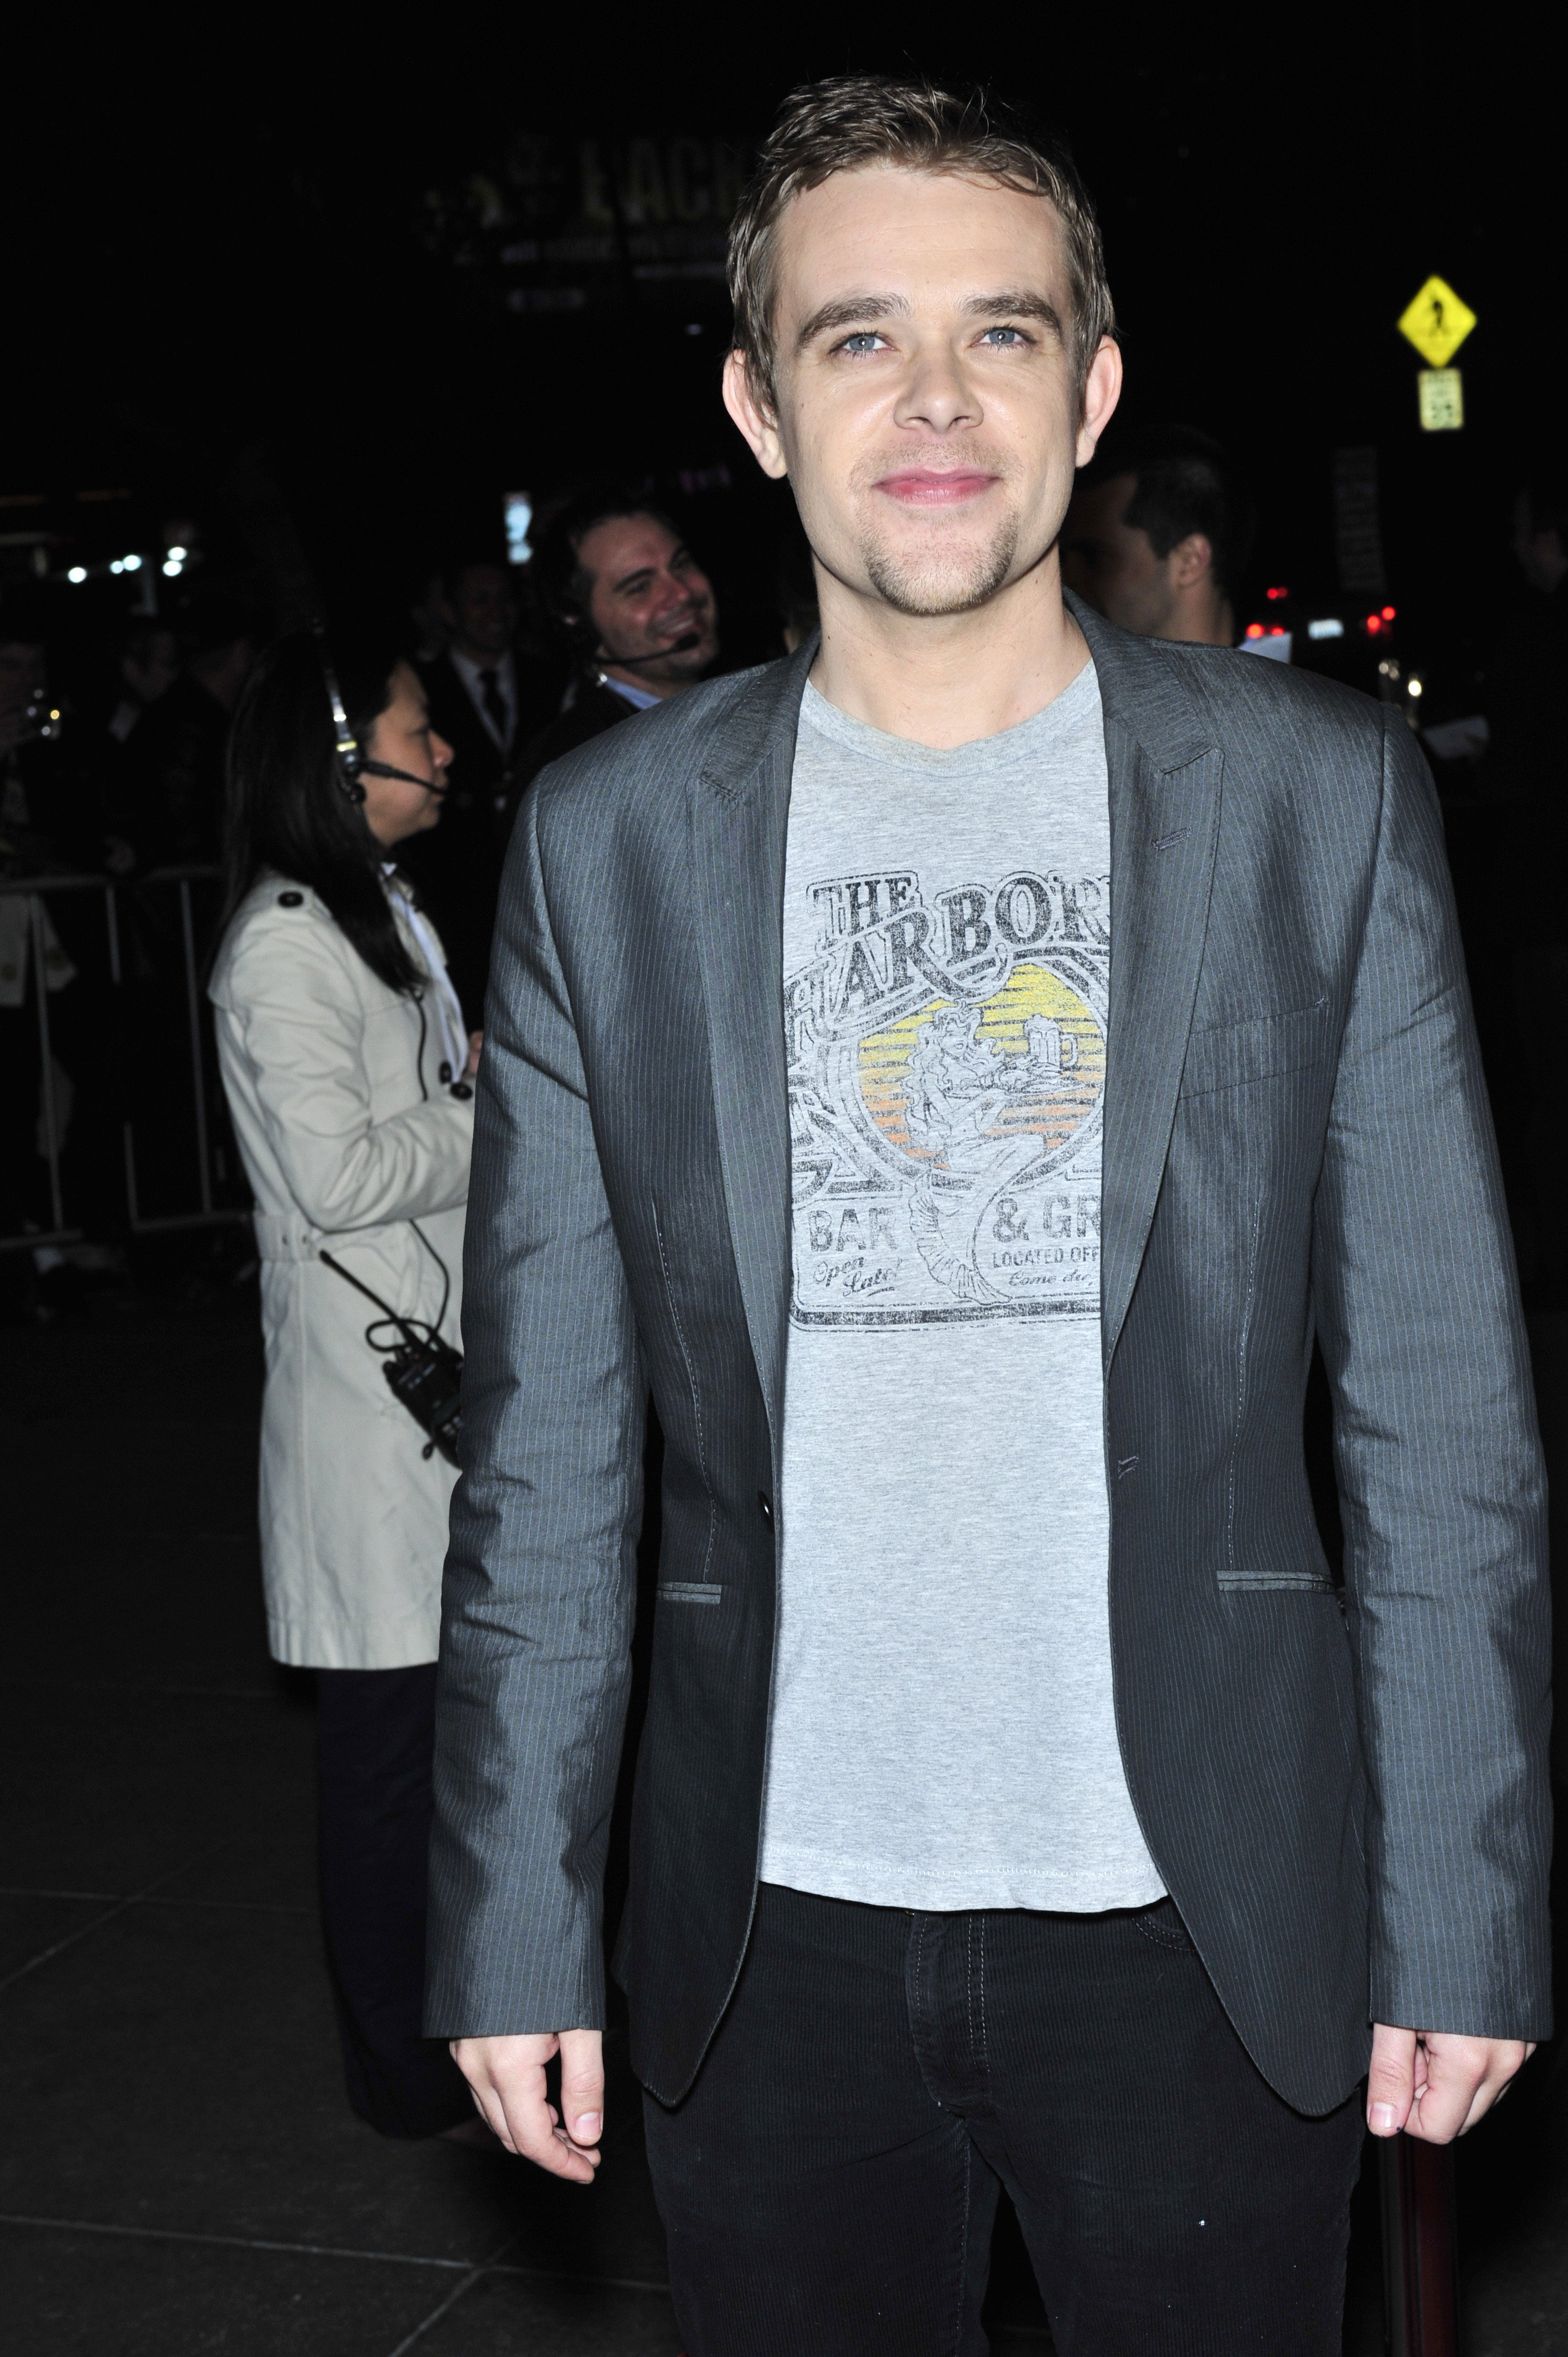 """Actor Nick Stahl at the premiere of the movie """"Sleepwalking"""" at the Directors Guild of America Theatre, West Hollywood. March 6, 2008 Los Angeles, California 